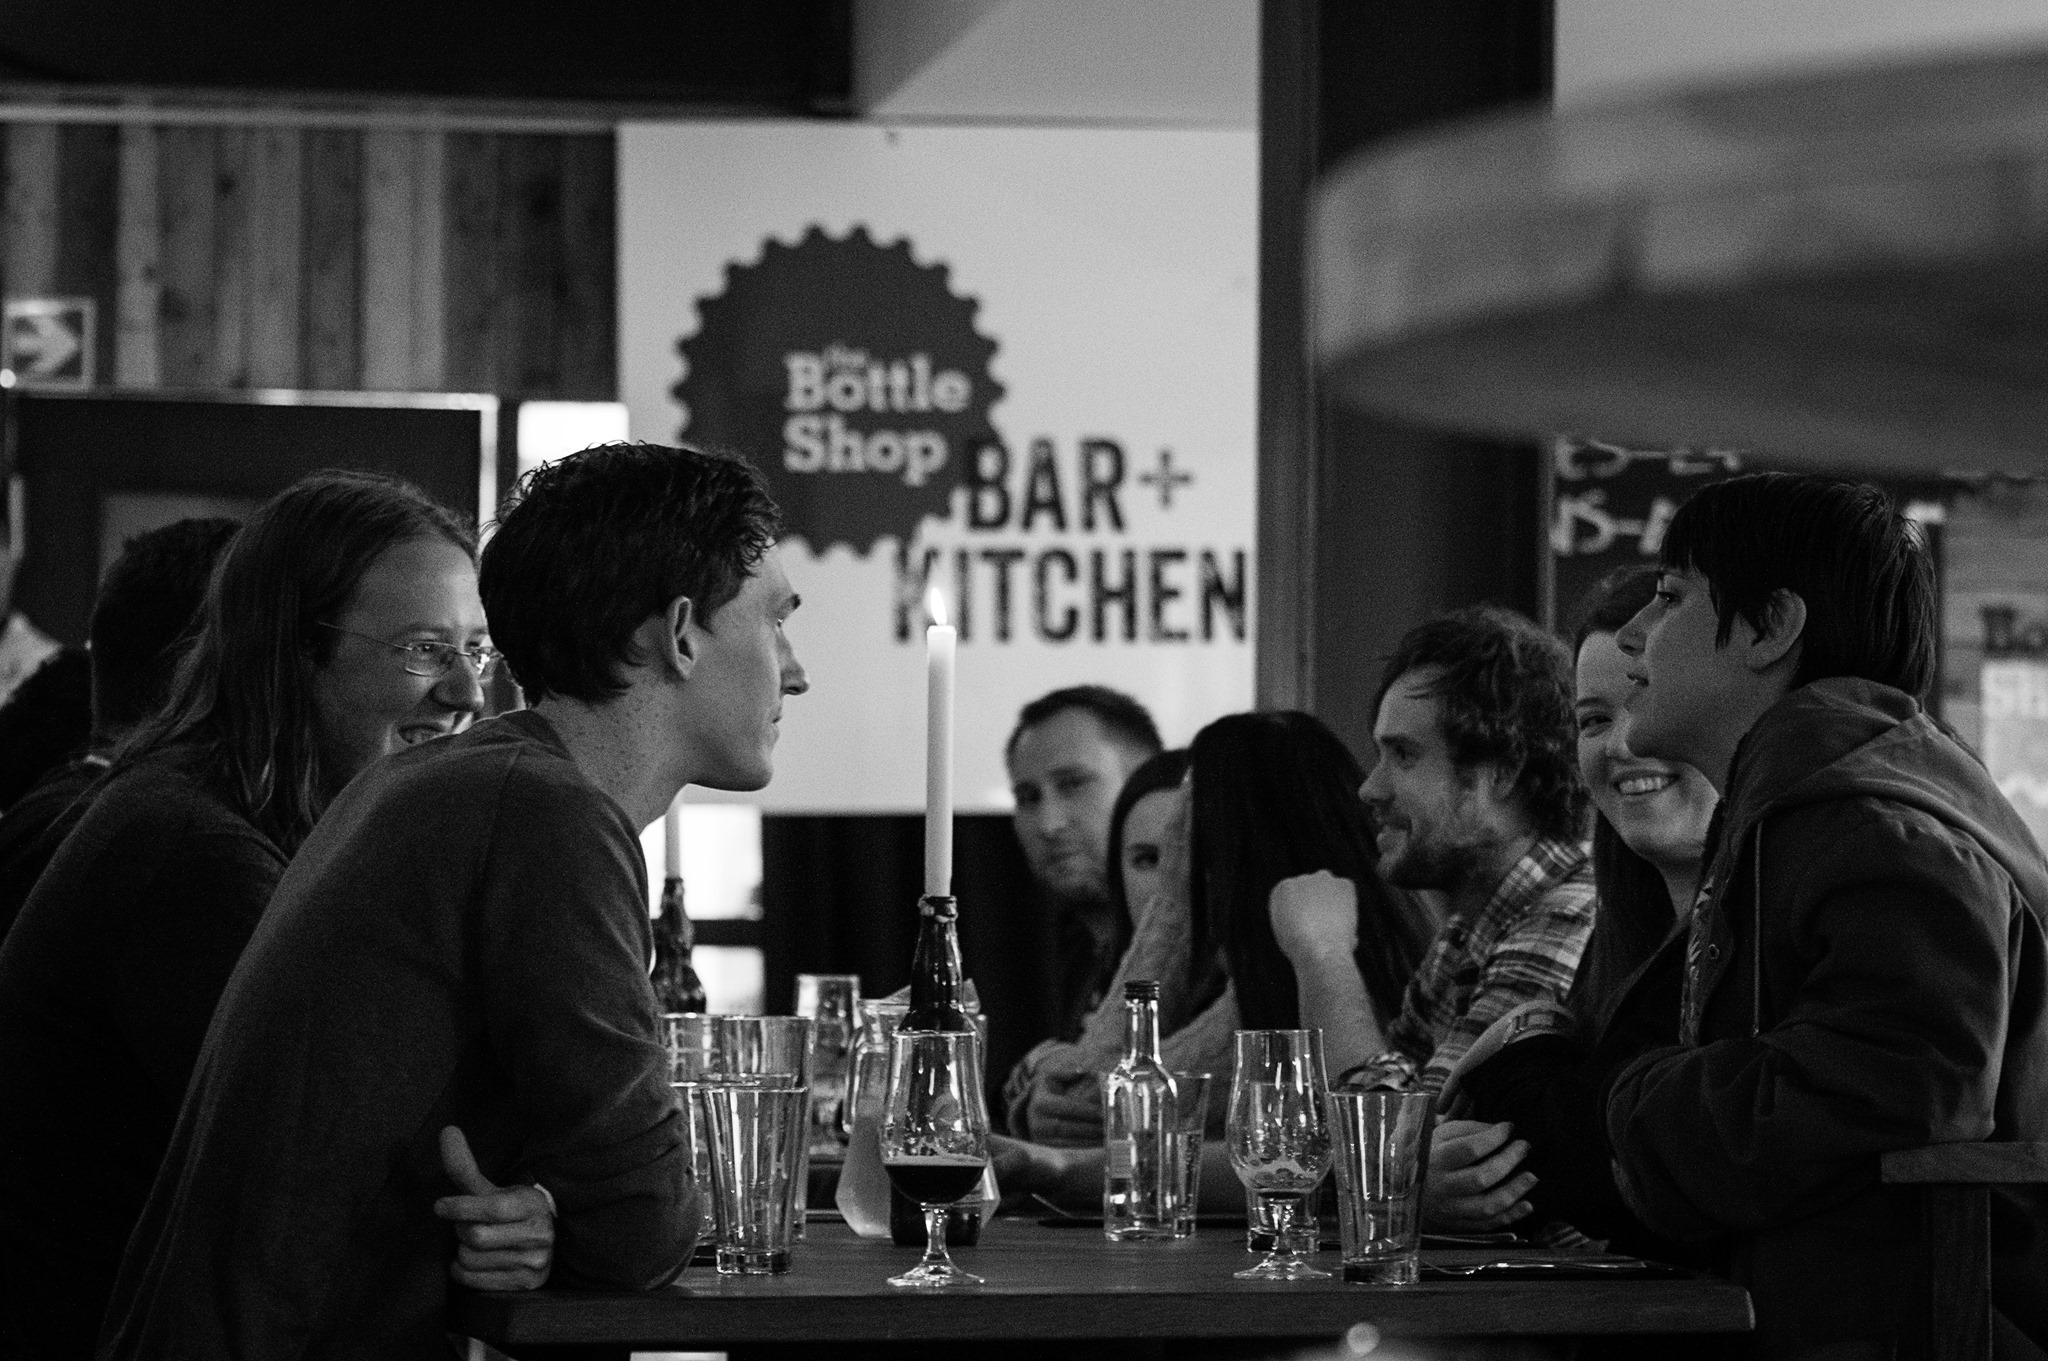 Newcastle's Craft Beer Bars, featuring a black and white image of people sat at a table at The Bottle Shop Bar & Kitchen